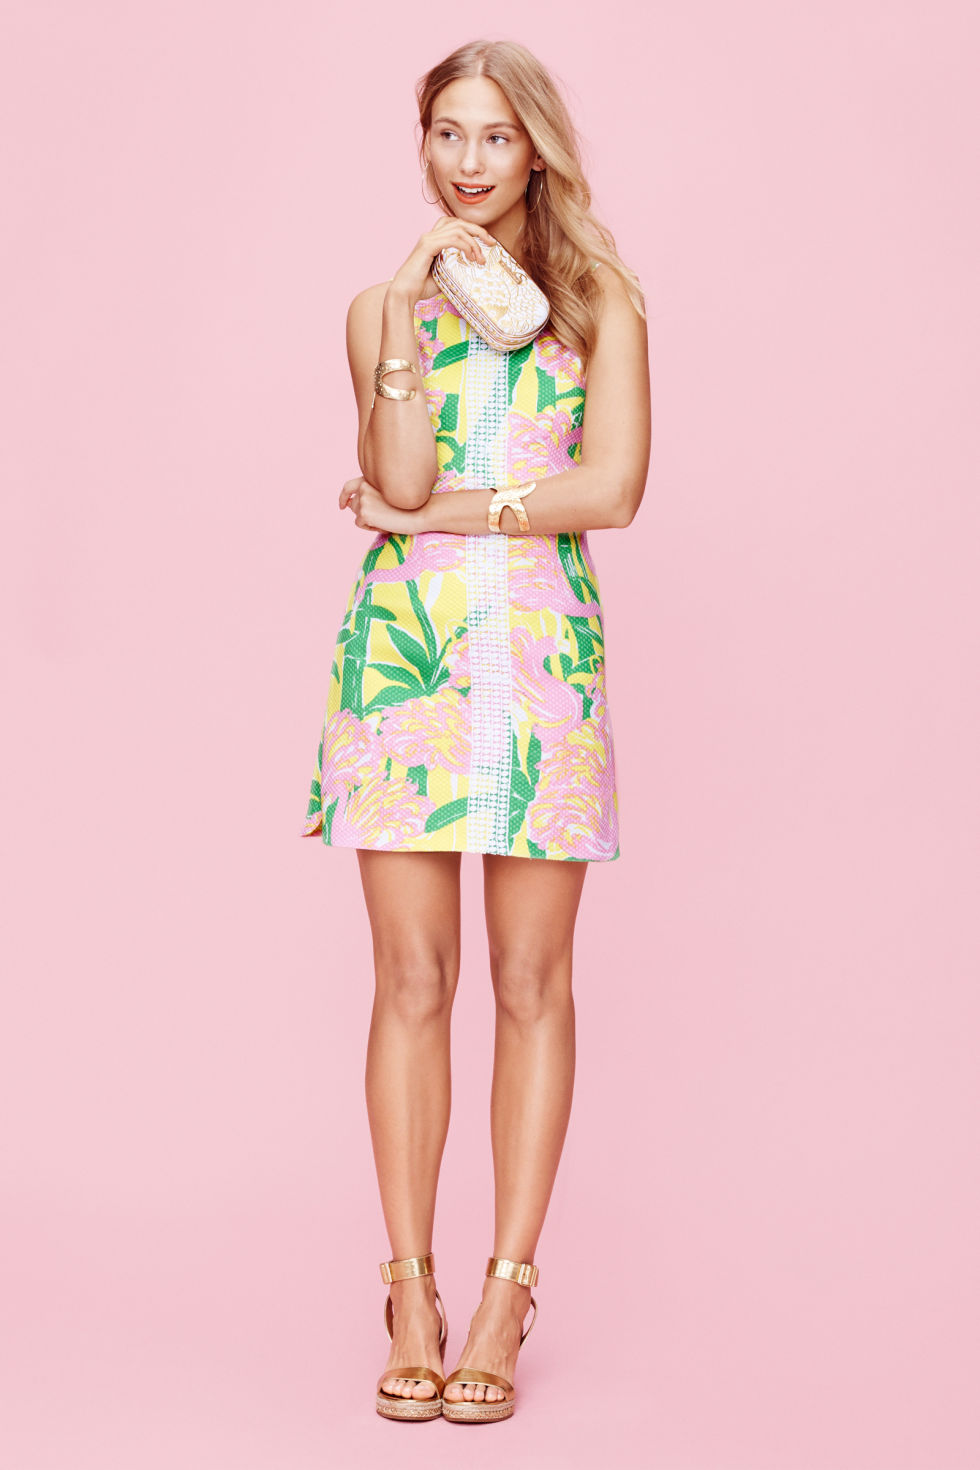 Exclusive: See the Complete Lilly Pulitzer x Target Collection